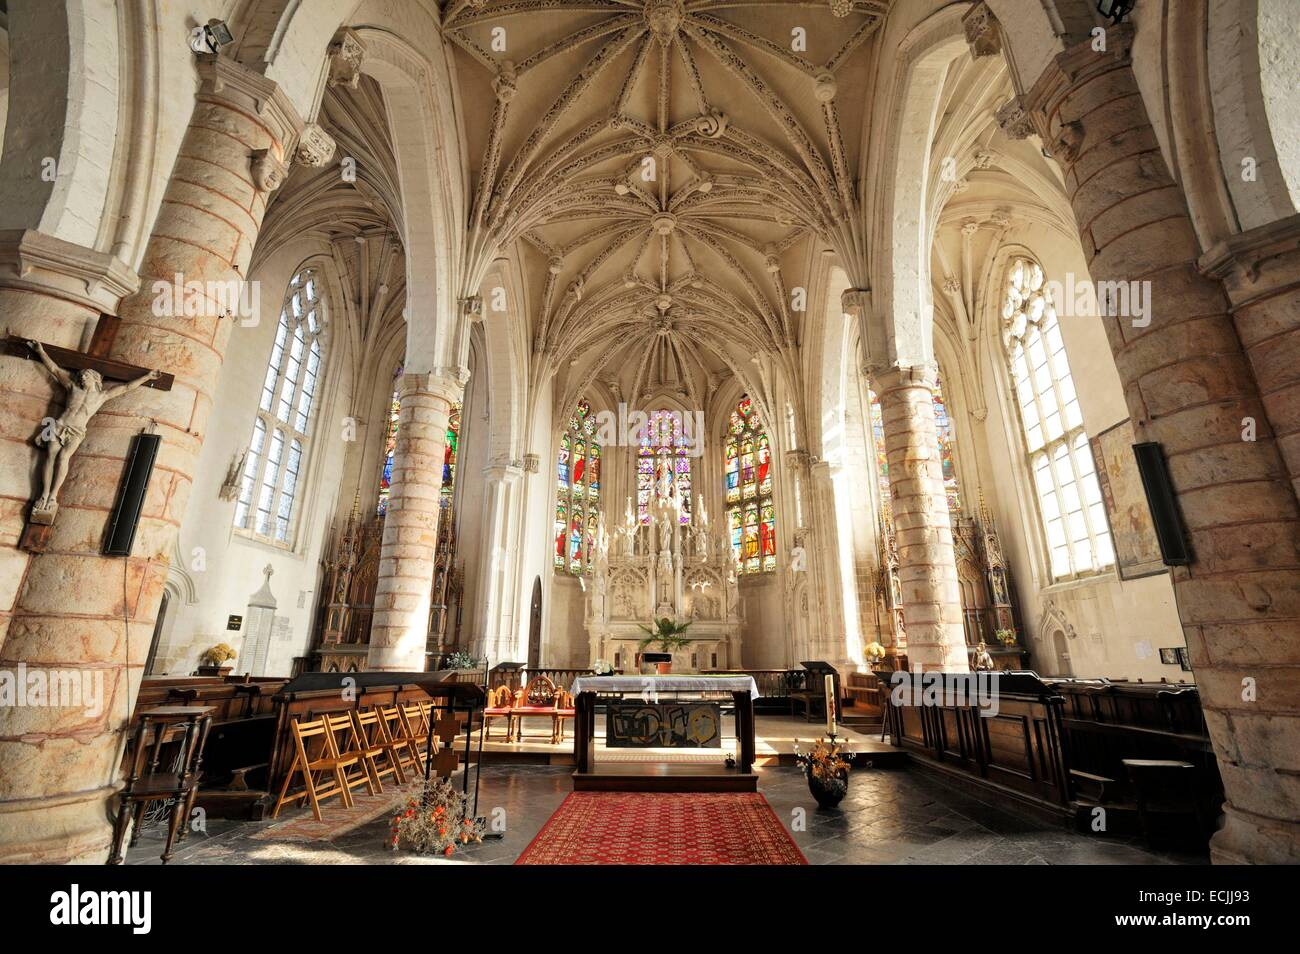 France, Pas de Calais, Auxi le Château, flamboyant Gothic style Church of Saint Martin dating from the 16th - Stock Image